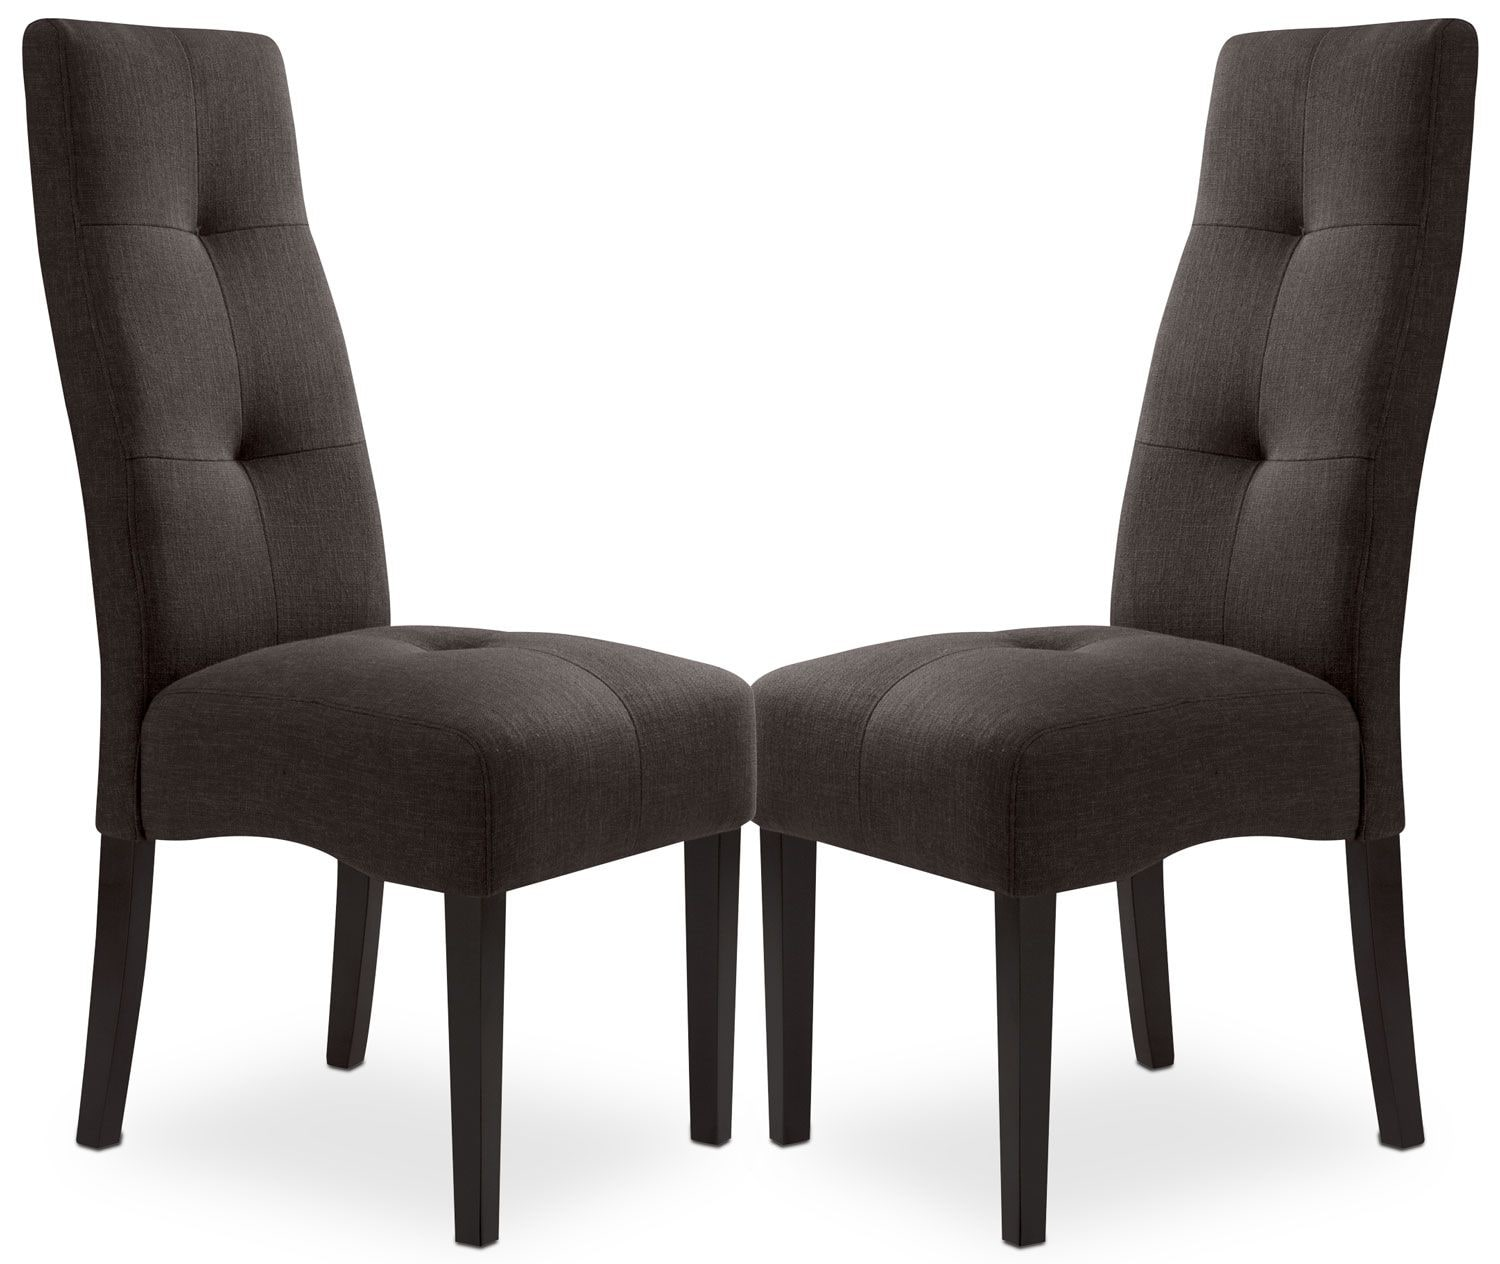 Sadie Grey Dining Chair – Set of 2